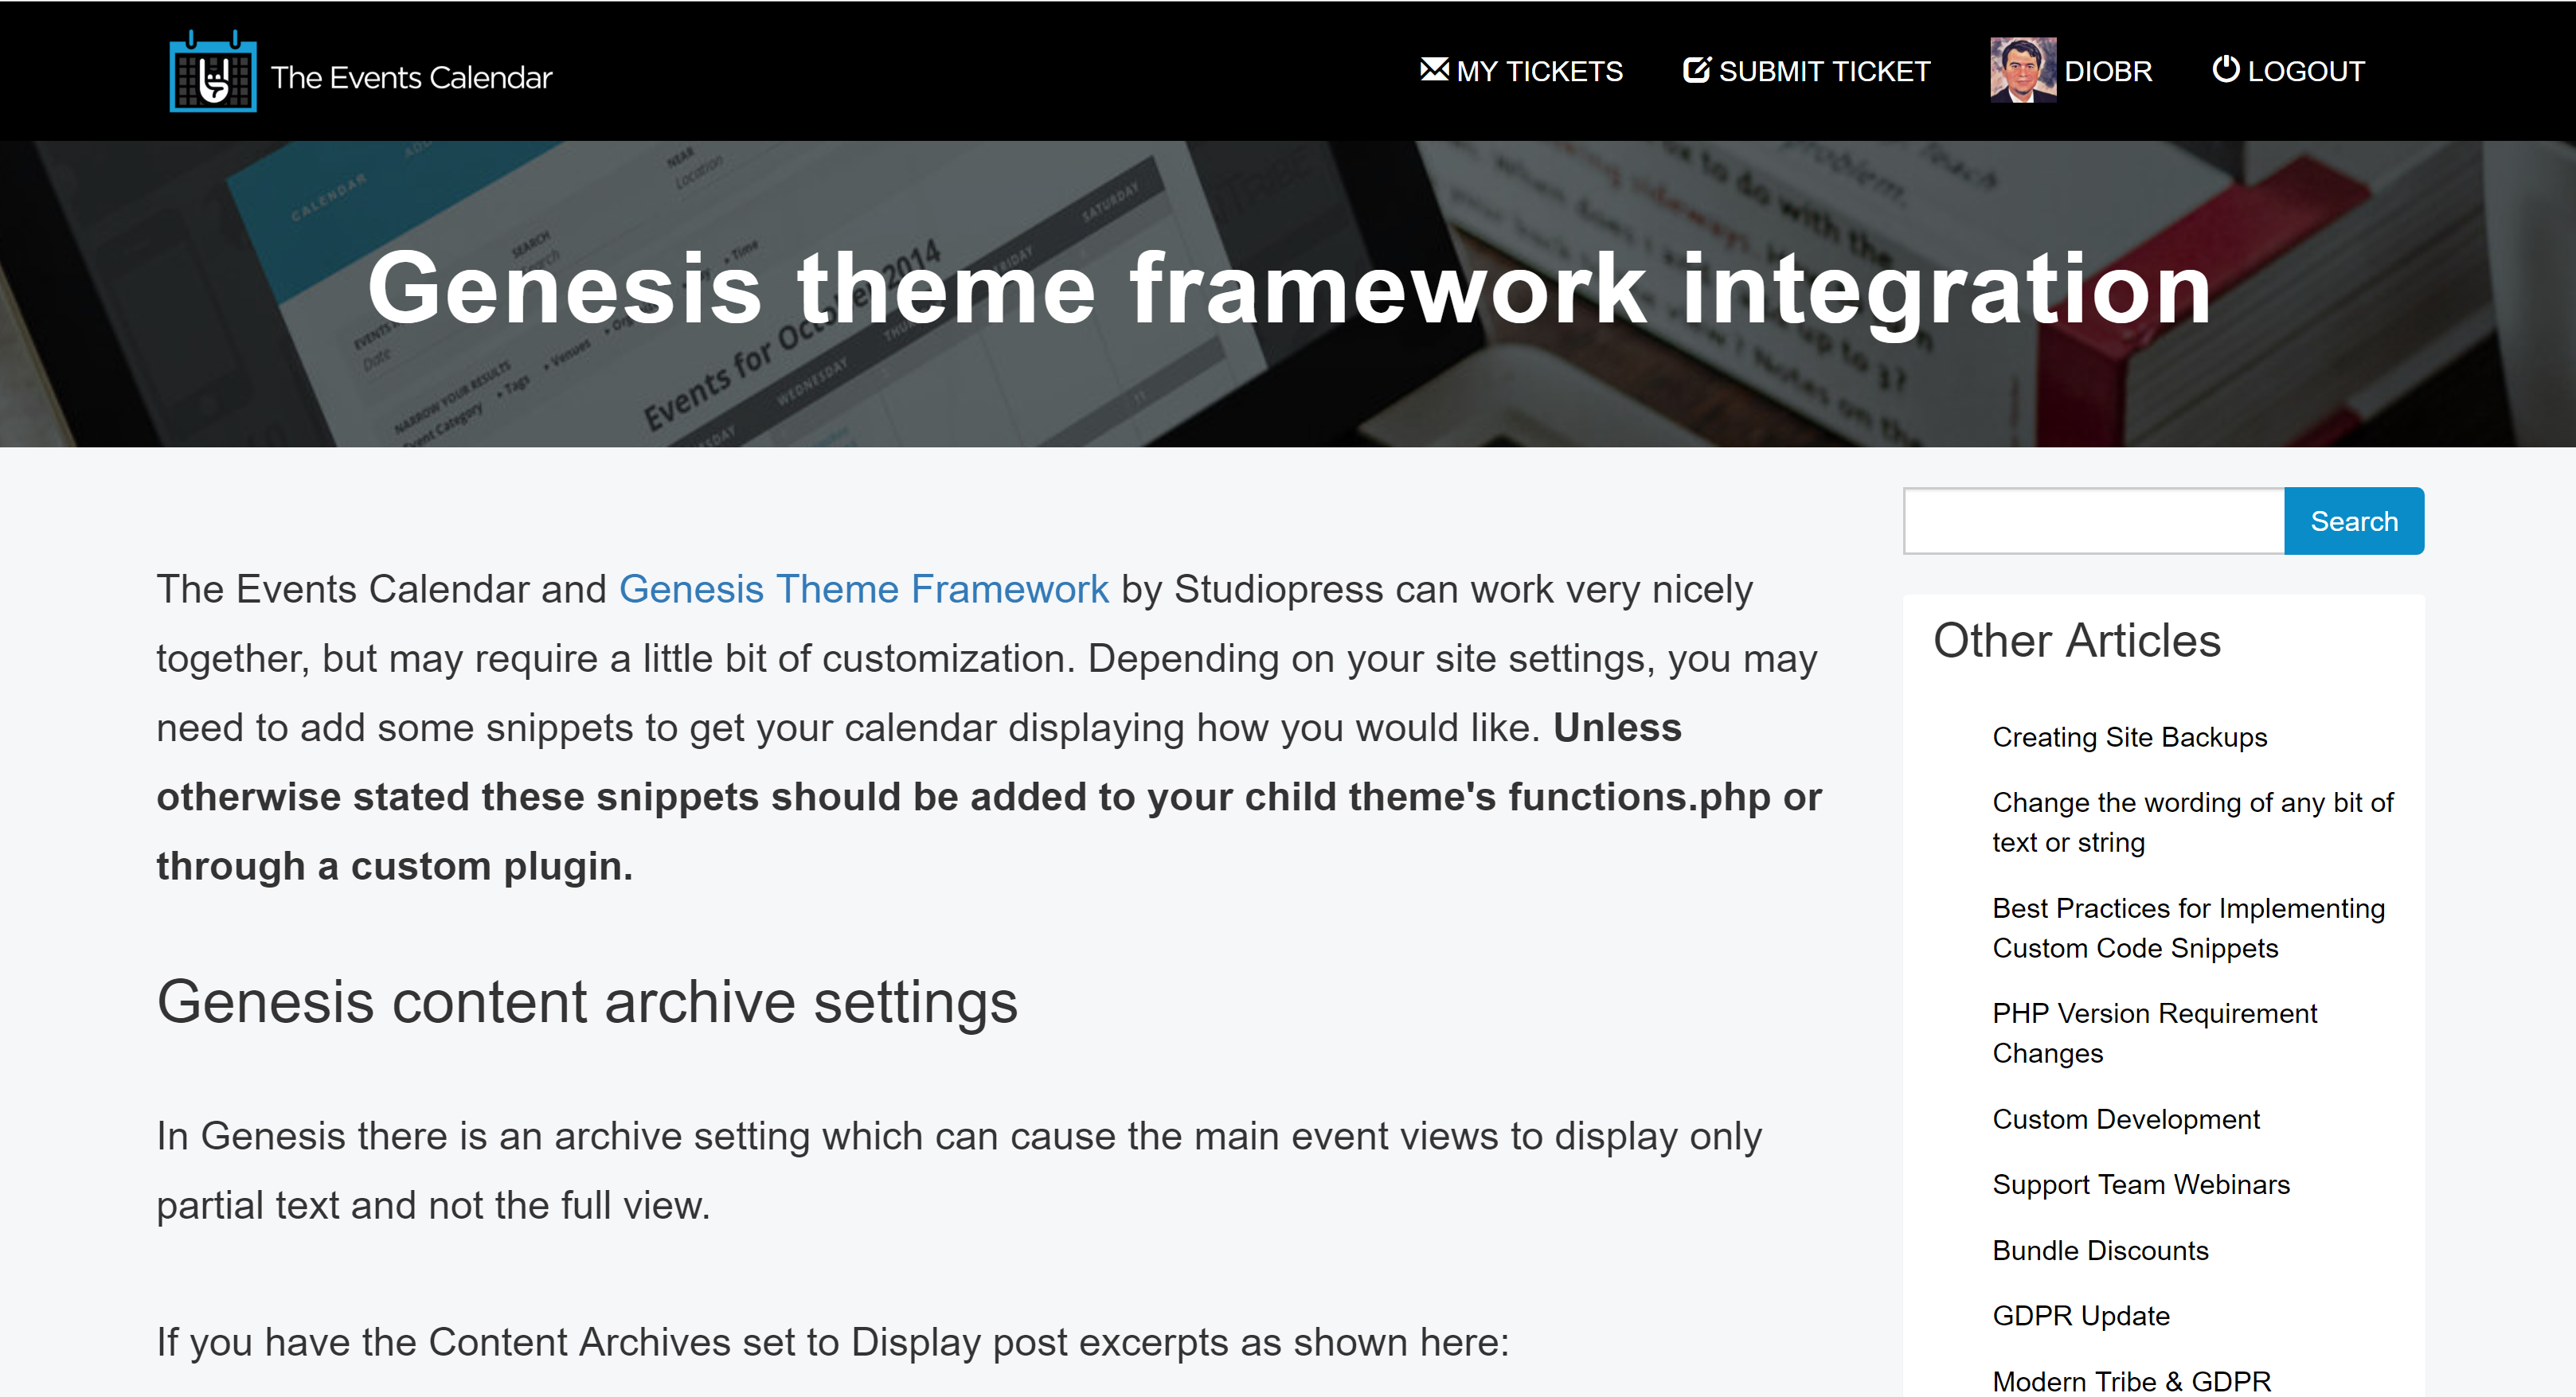 Screenshot of Genesis and Events Calendar Integration Page